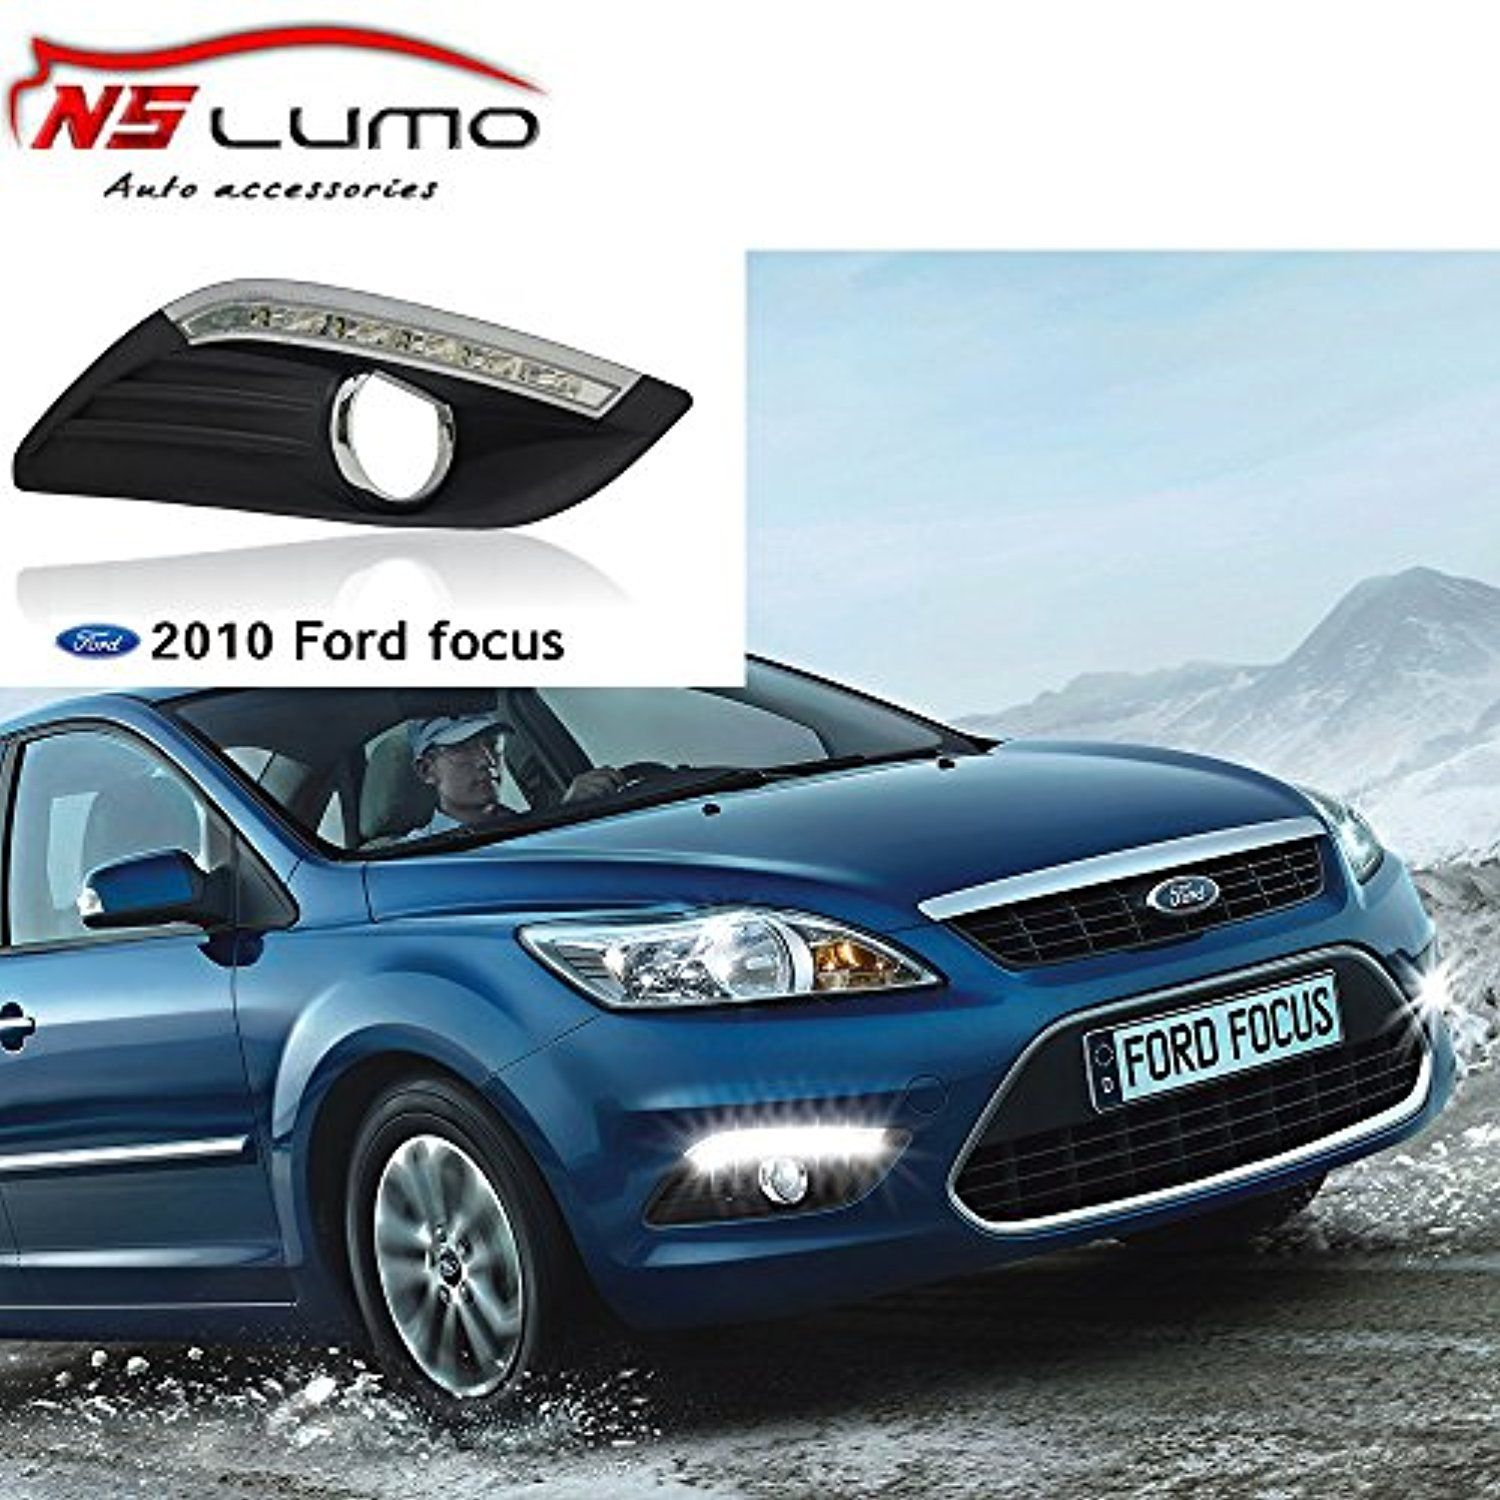 medium resolution of nslumo led fog light daytime running light drl driving lamp for ford focus sedan 2009 2011 high configuration awesome products selected by anna